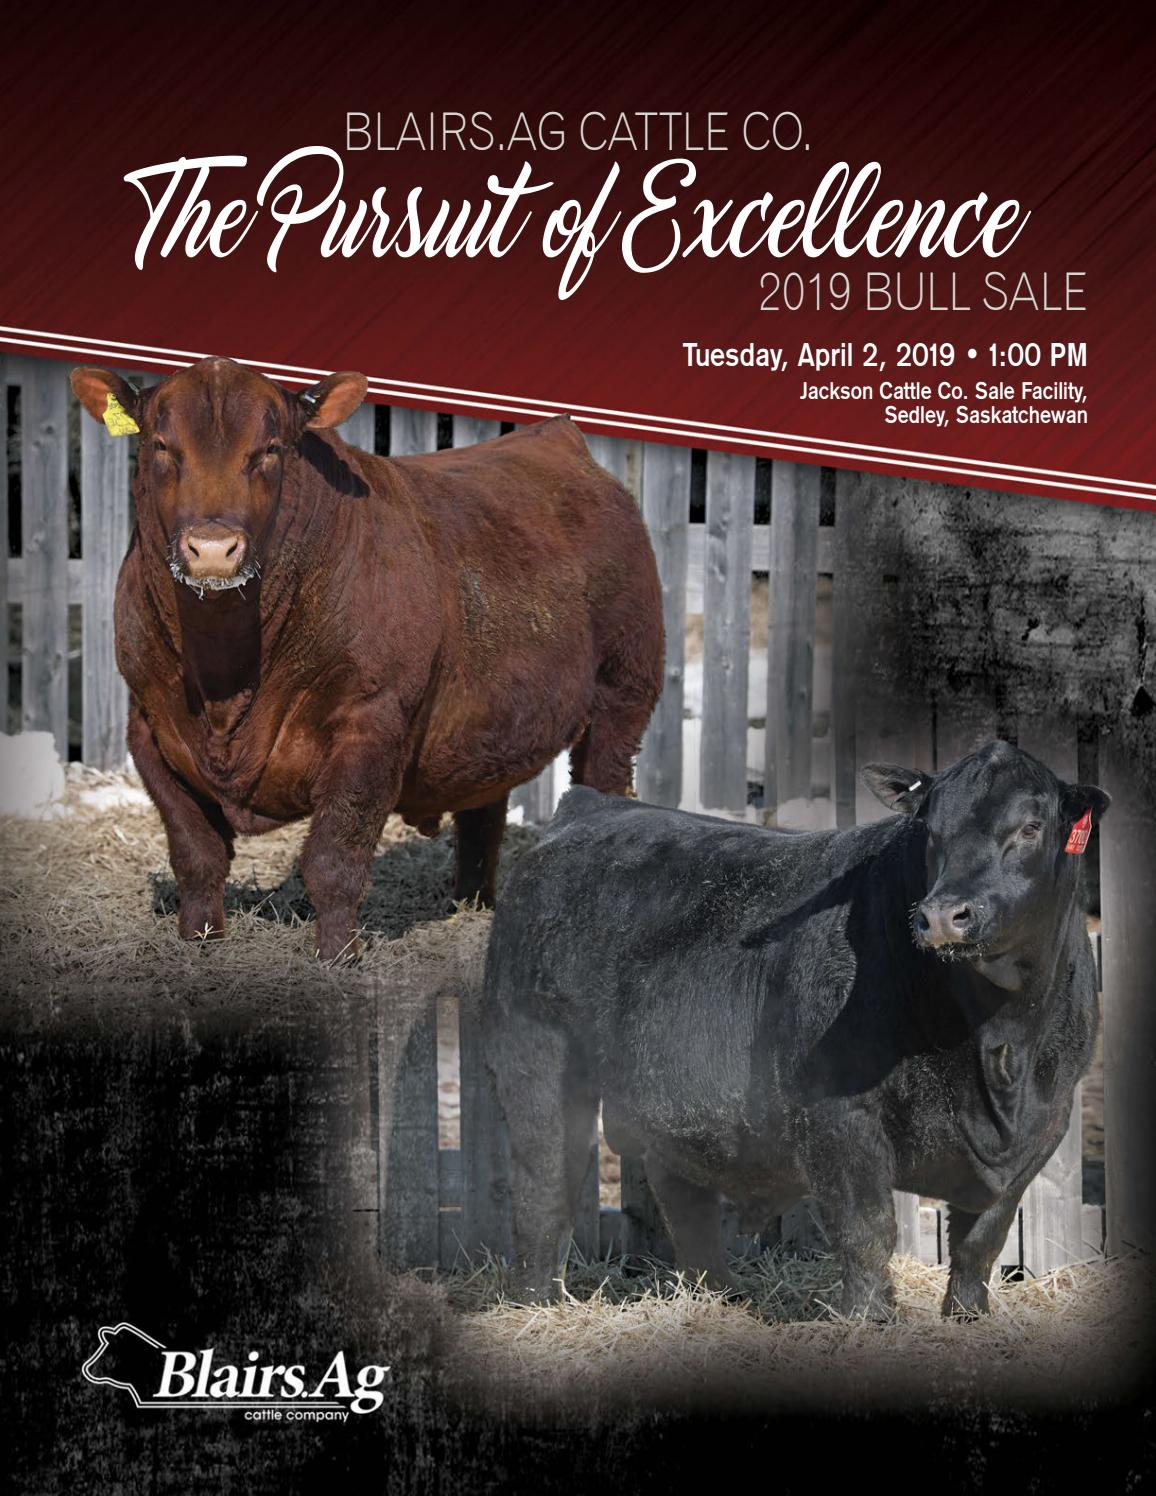 Blairs Ag Cattle Co  The Pursuit of Excellence 2019 Bull